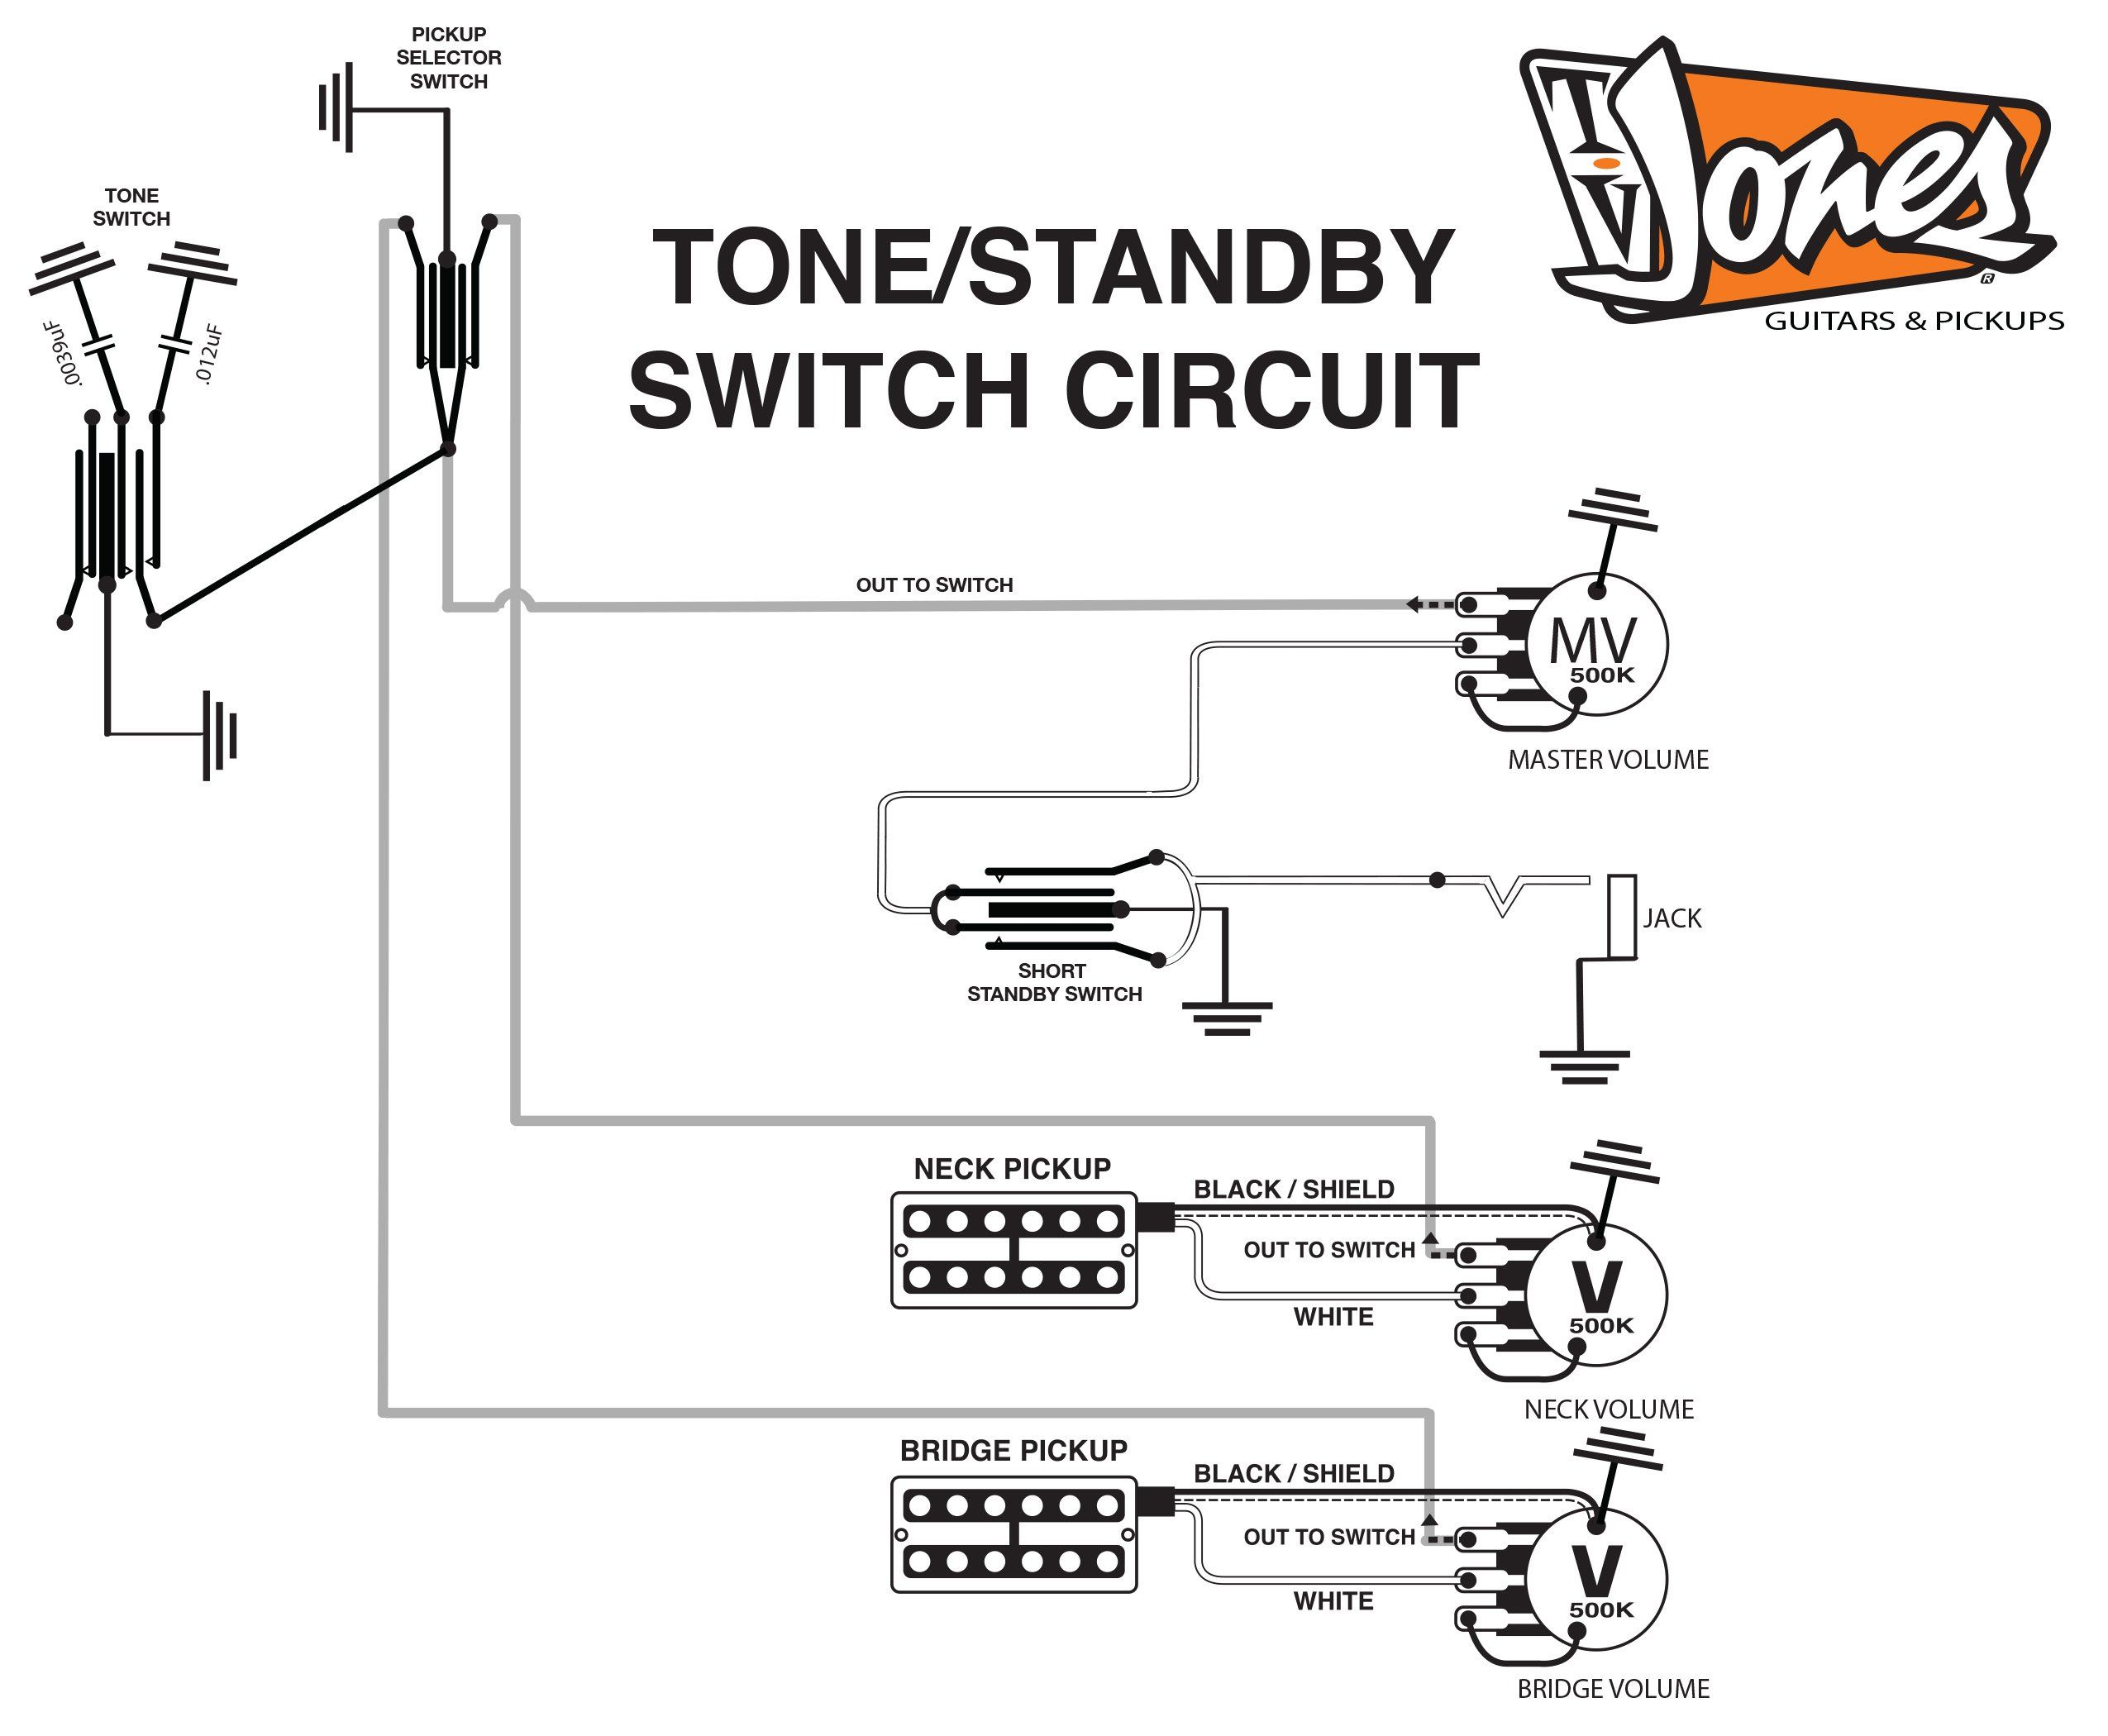 Afbeeldingsresultaat Voor Tone Switch Electric Guitar Schematic Gretsch Wiring Diagram